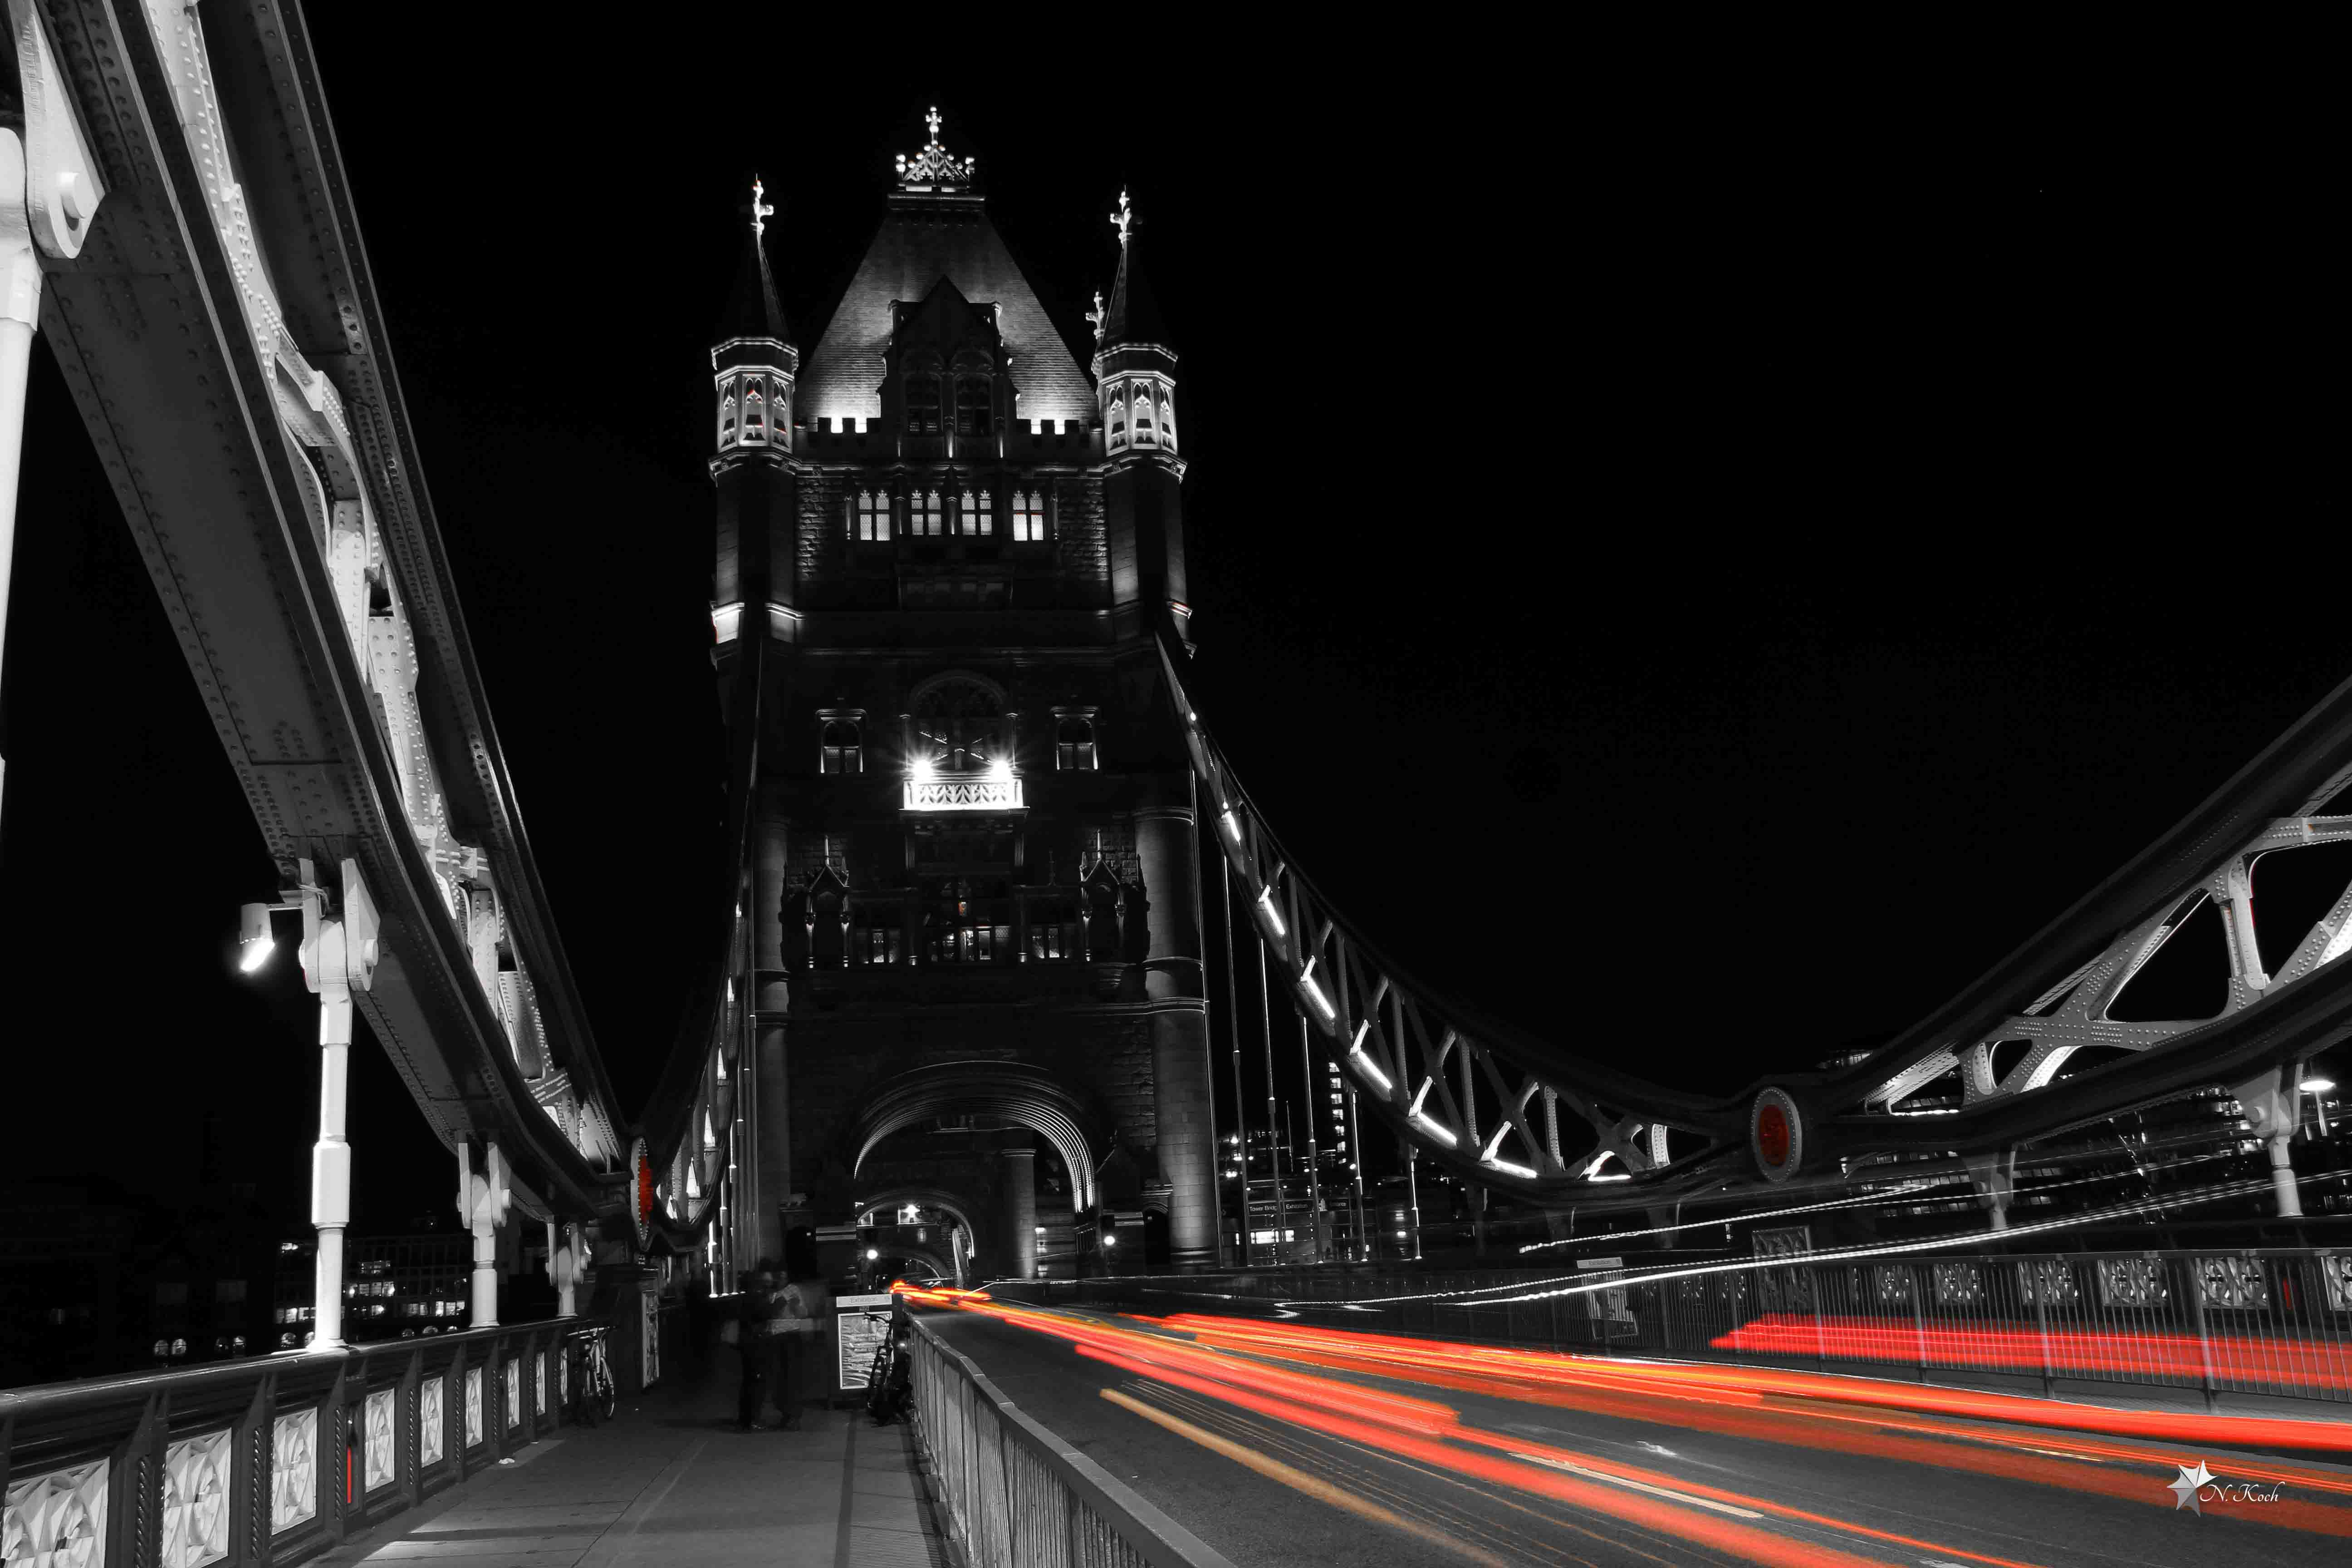 2014, London | Tower Bridge in the night